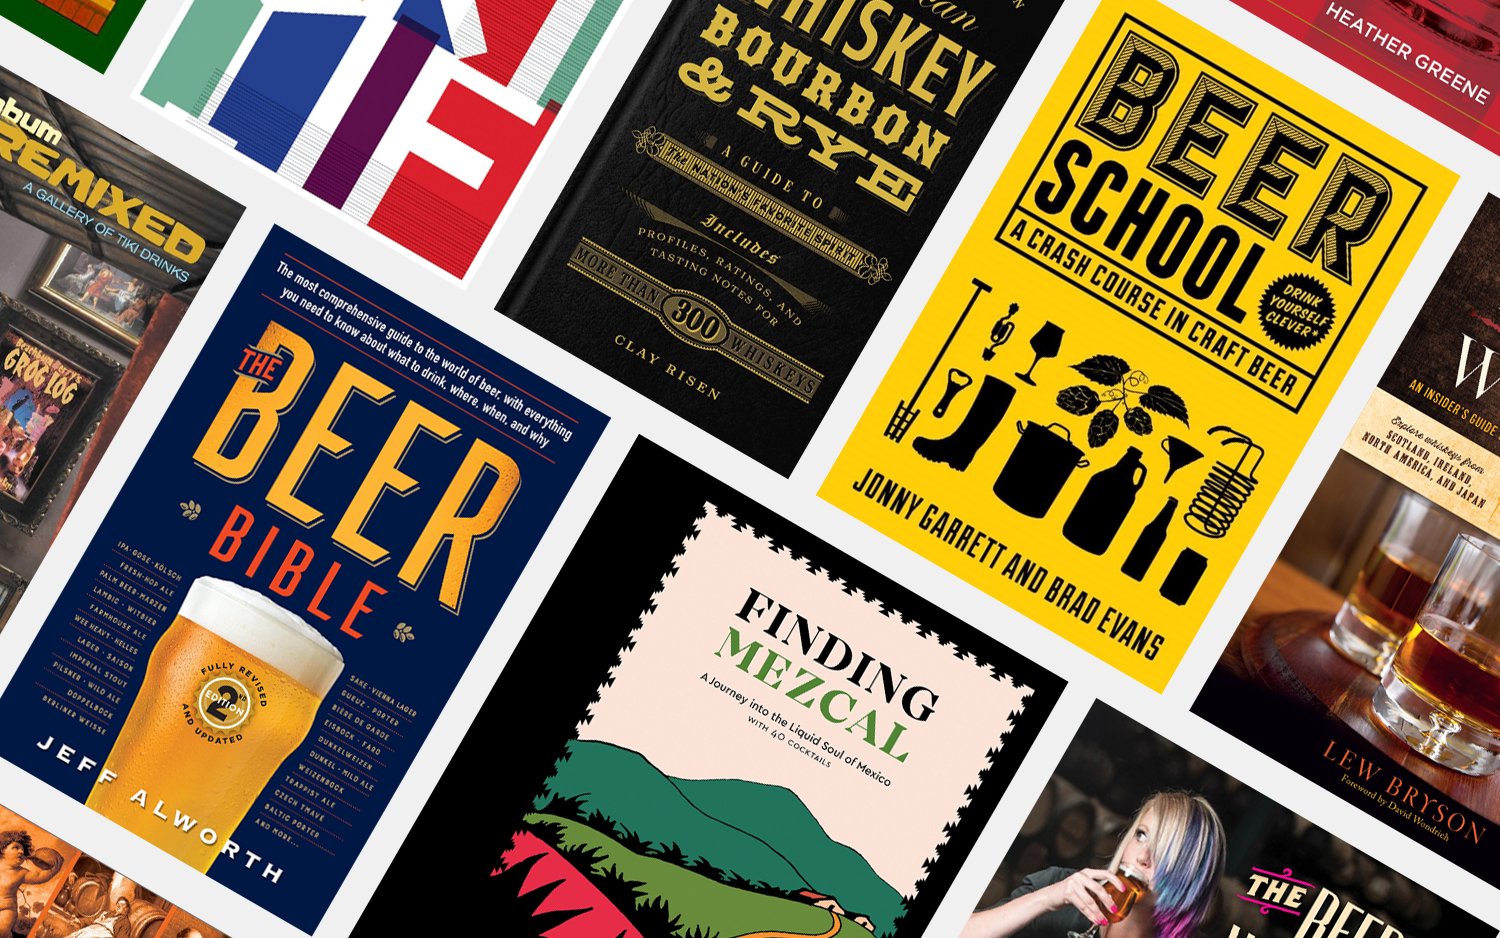 The 15 Best Books About Alcohol